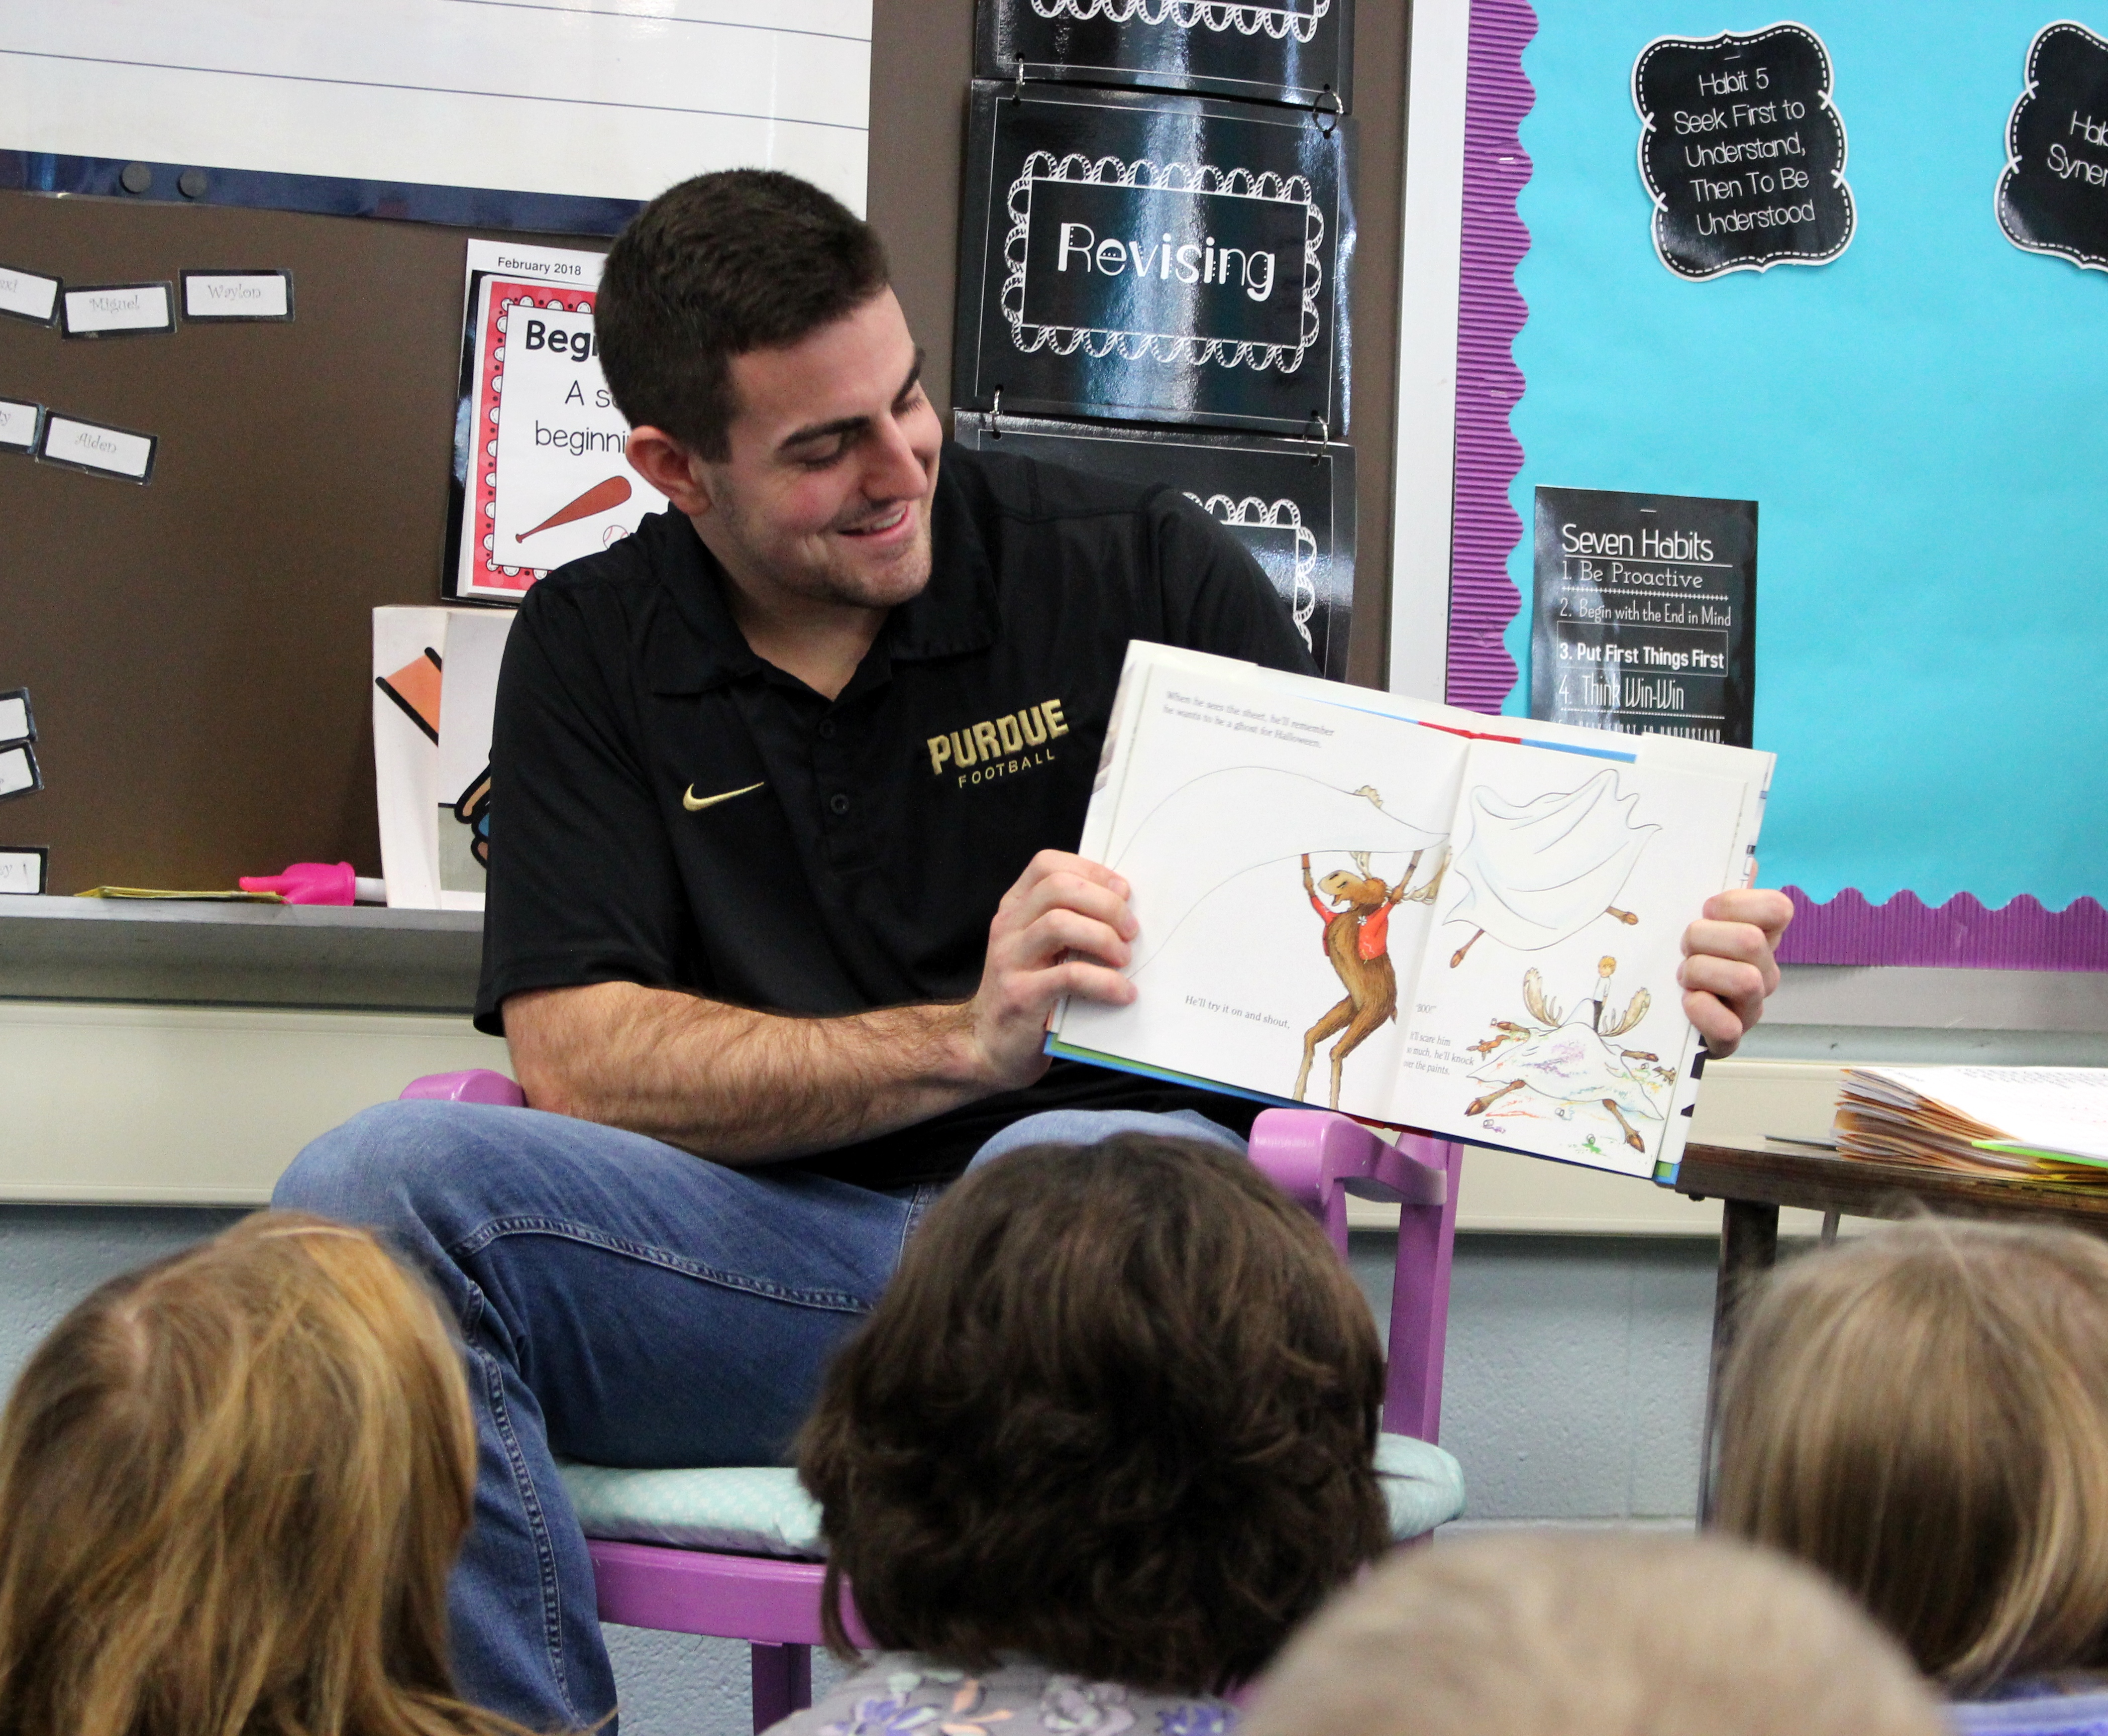 David Blough reads to students at Hershey Elementary